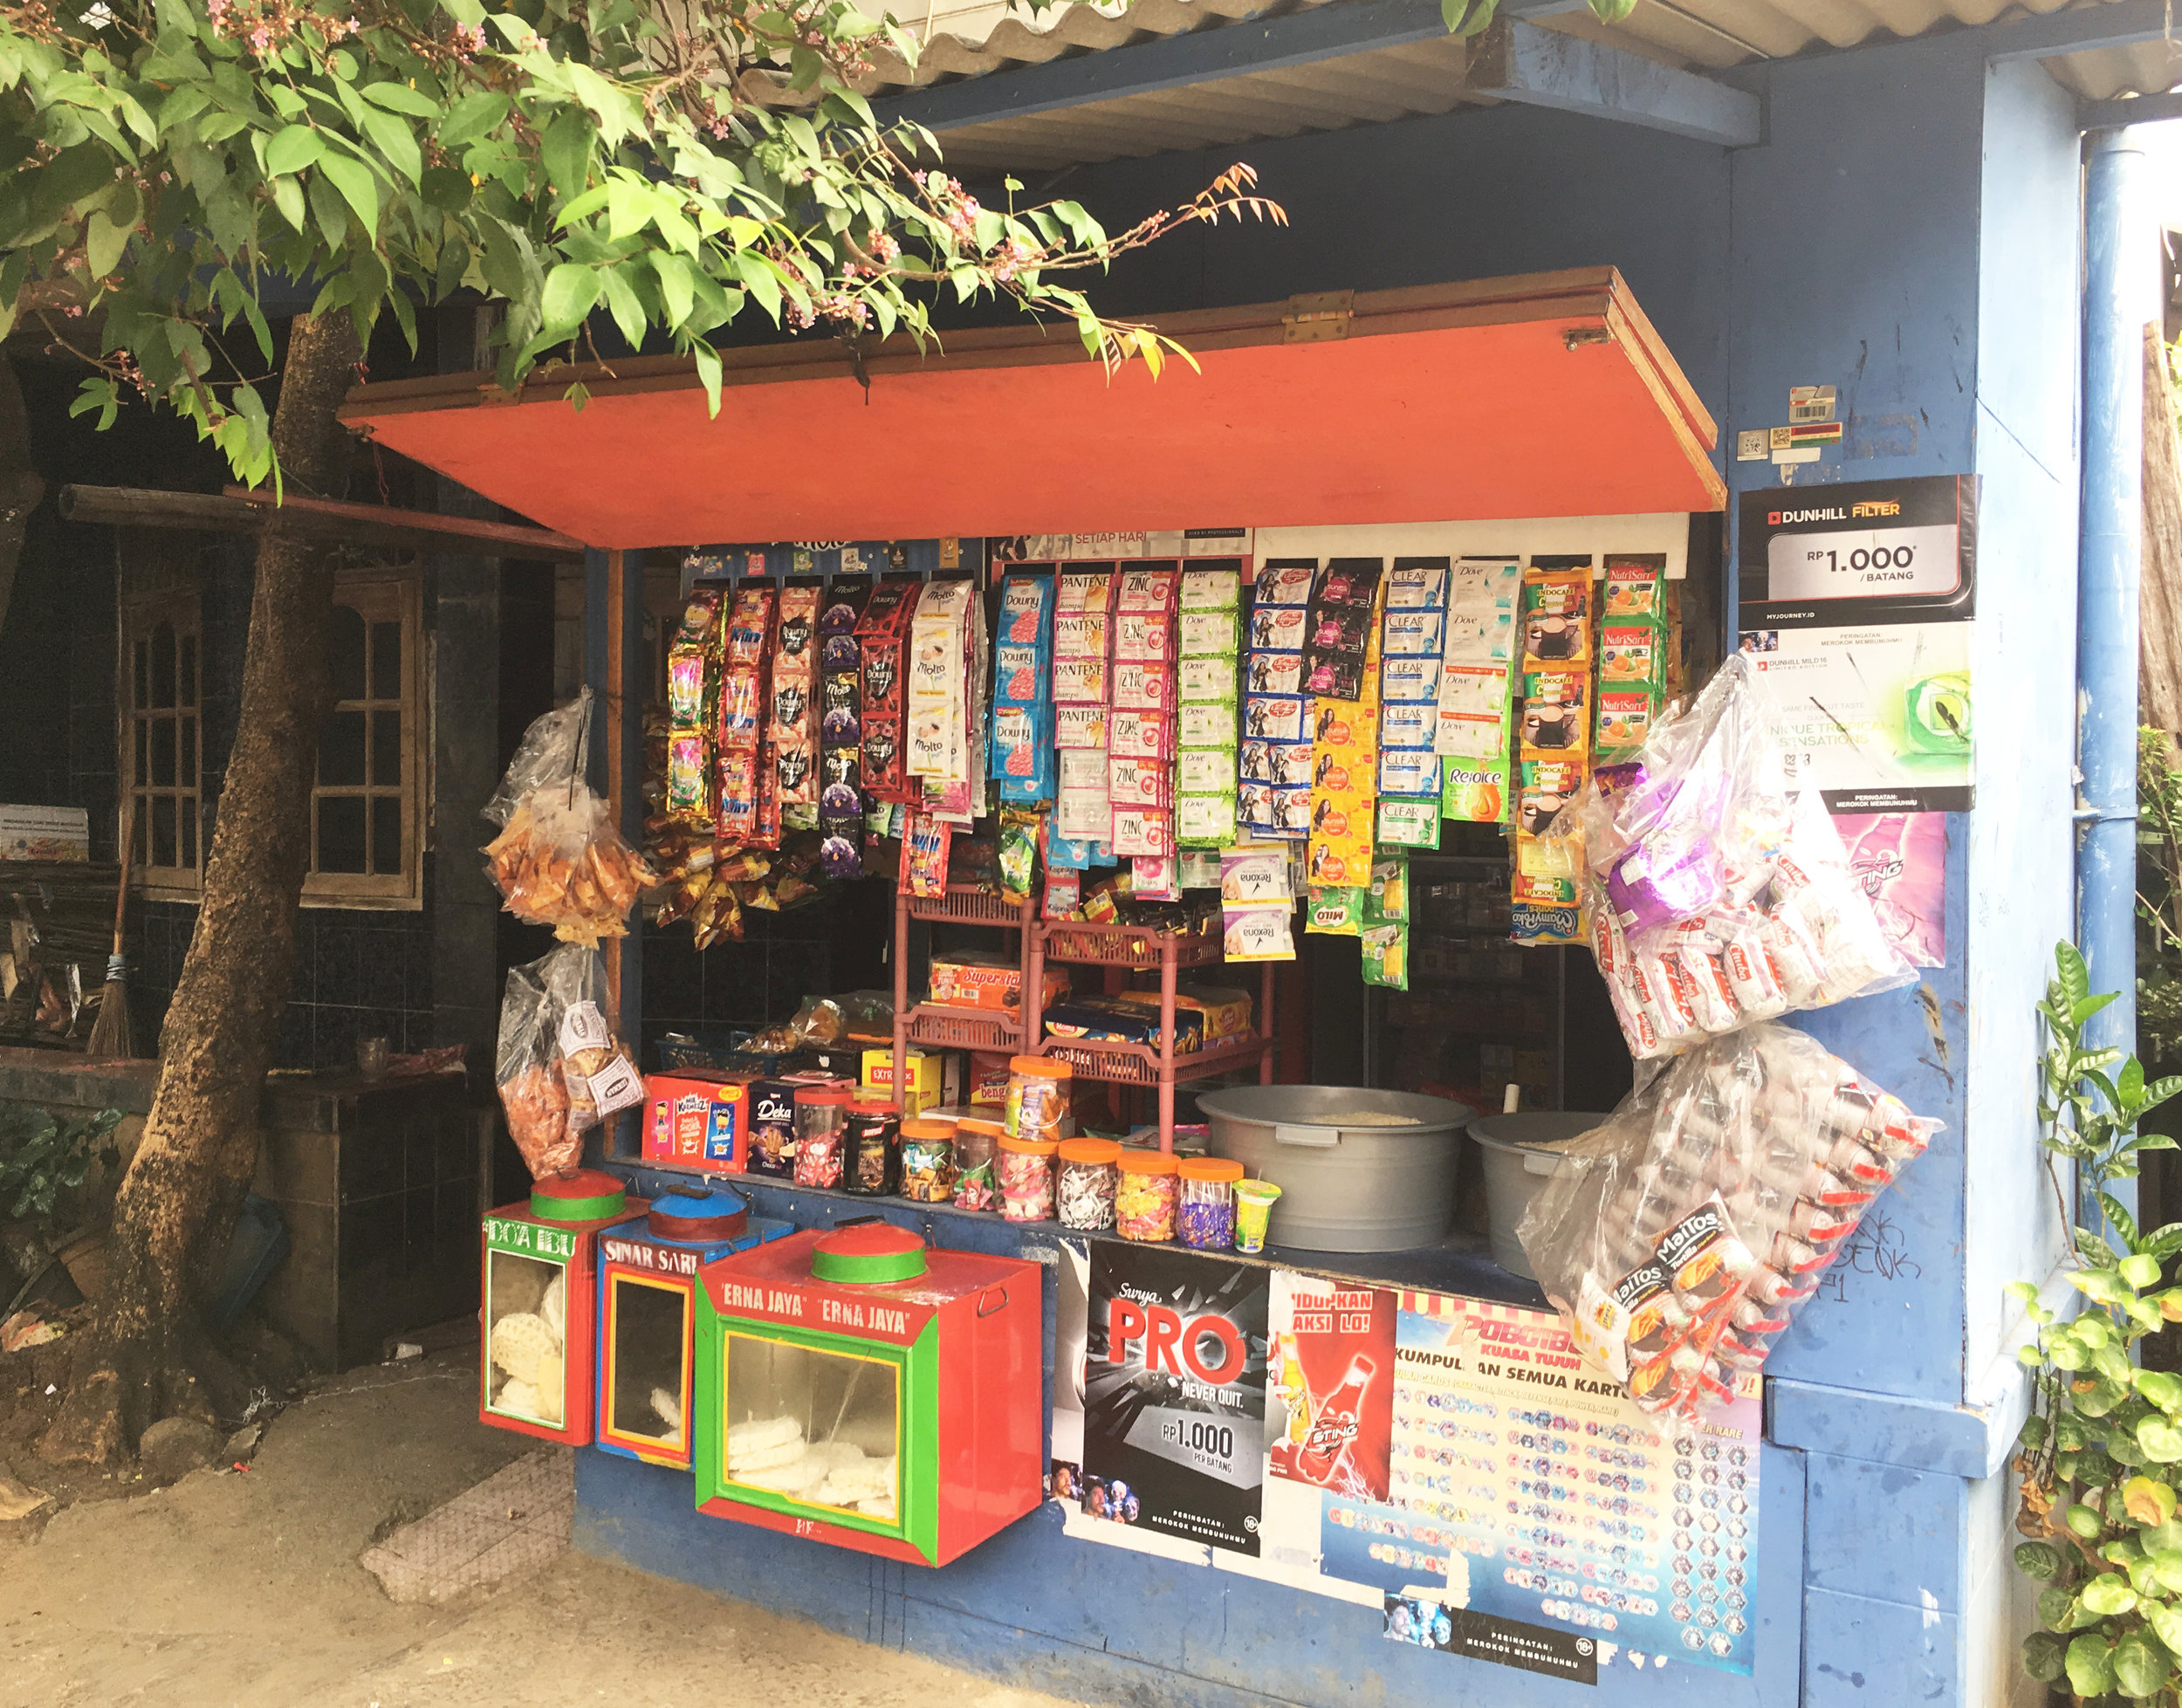 Daily necessity store selling small package goods